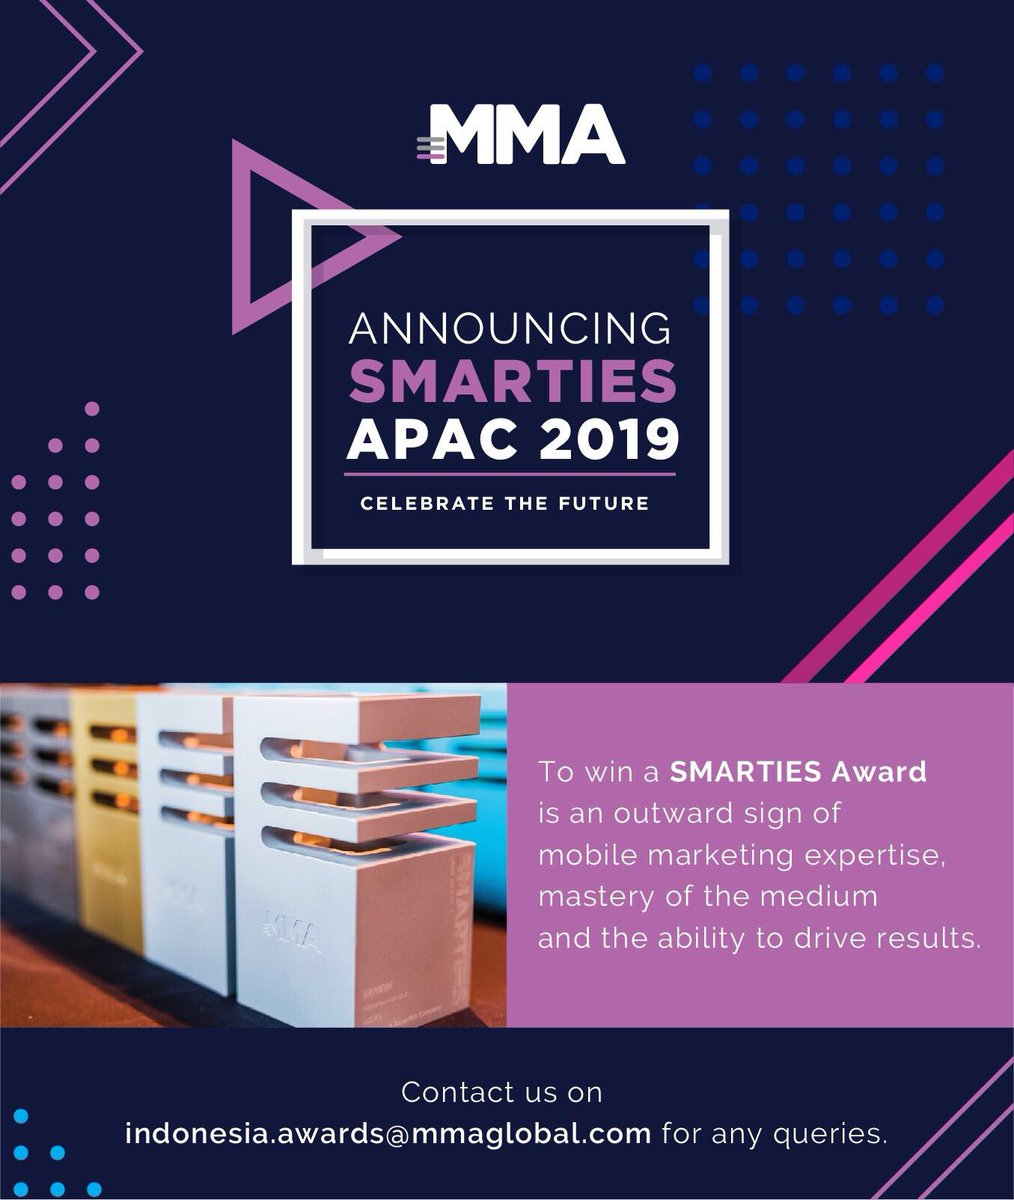 Get listed for this year's Smarties APAC 2019 Awards. #SmartiesAwards #Indonesia  @MMA_APAC @MMAglobal #MMAIndonesiapic.twitter.com/zA9xpt6lGi